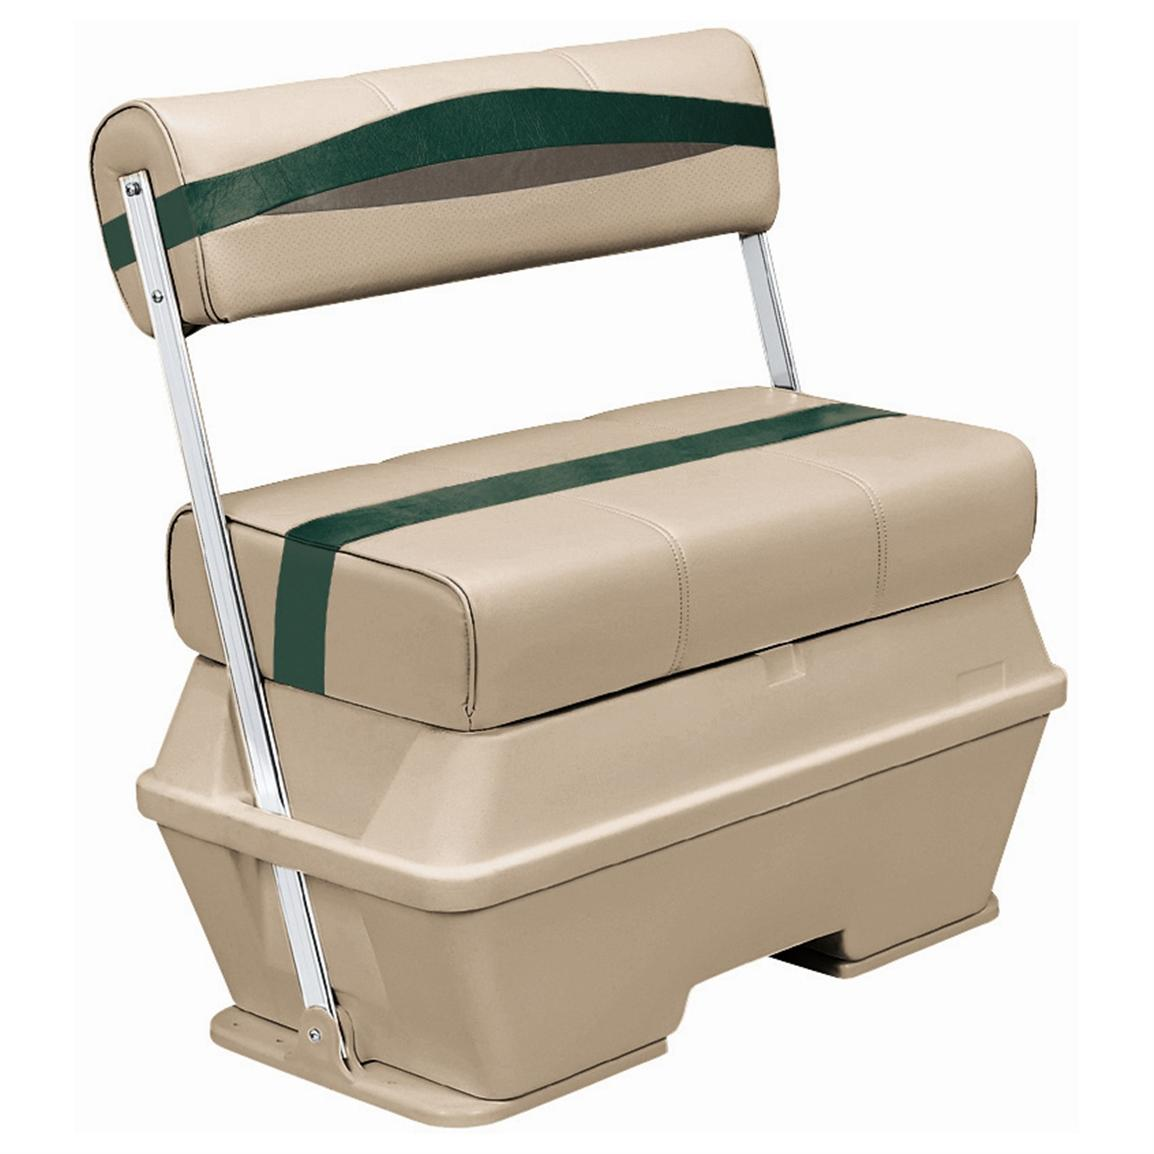 Wise® Premier Cooler Flip-Flop Pontoon Seat, Color F - Mocha Java Punch / Evergreen / Rock Salt